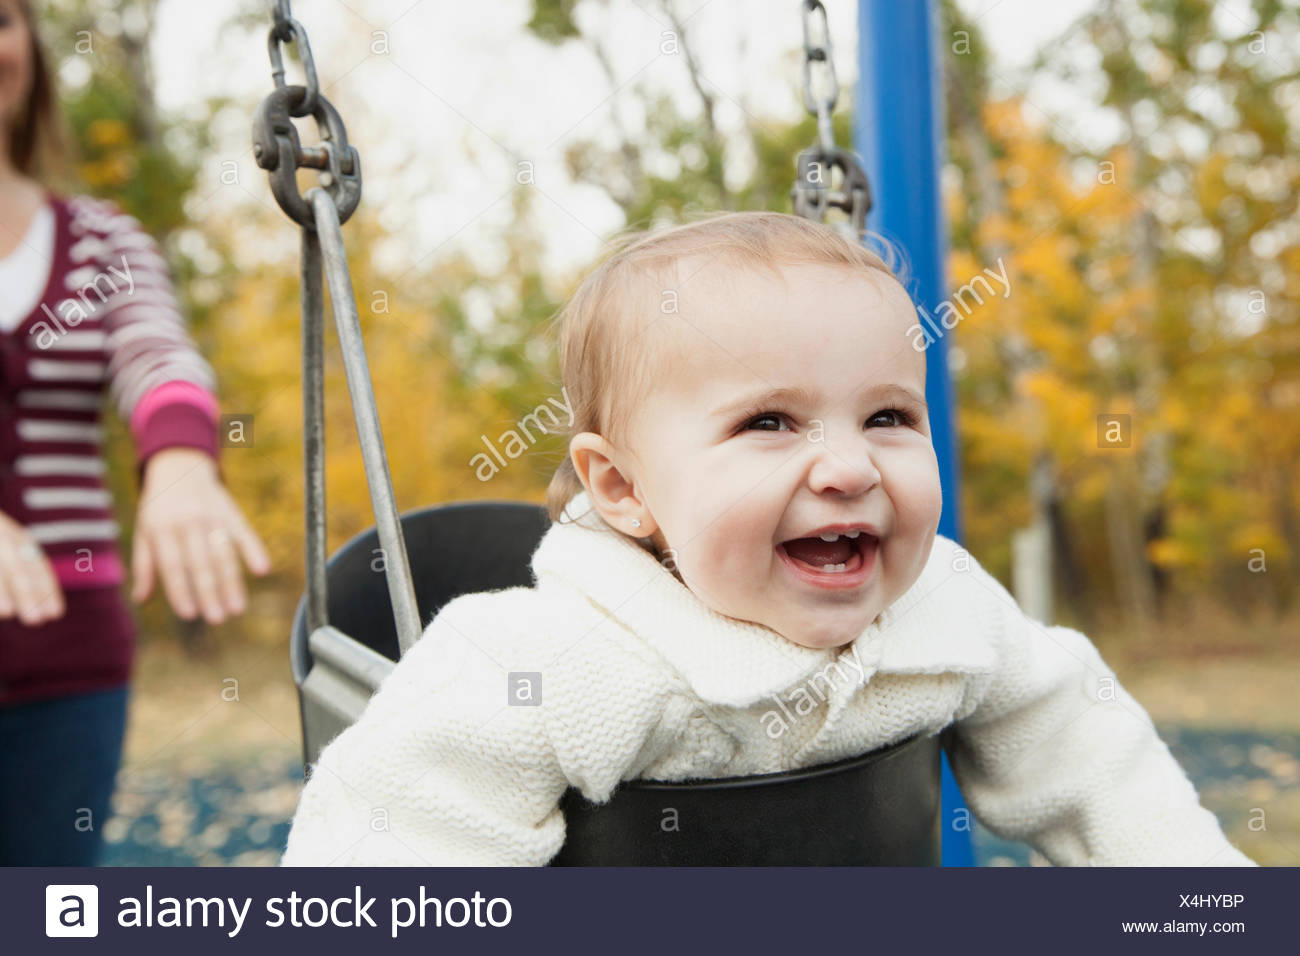 Mother pushing baby girl on swing in park - Stock Image